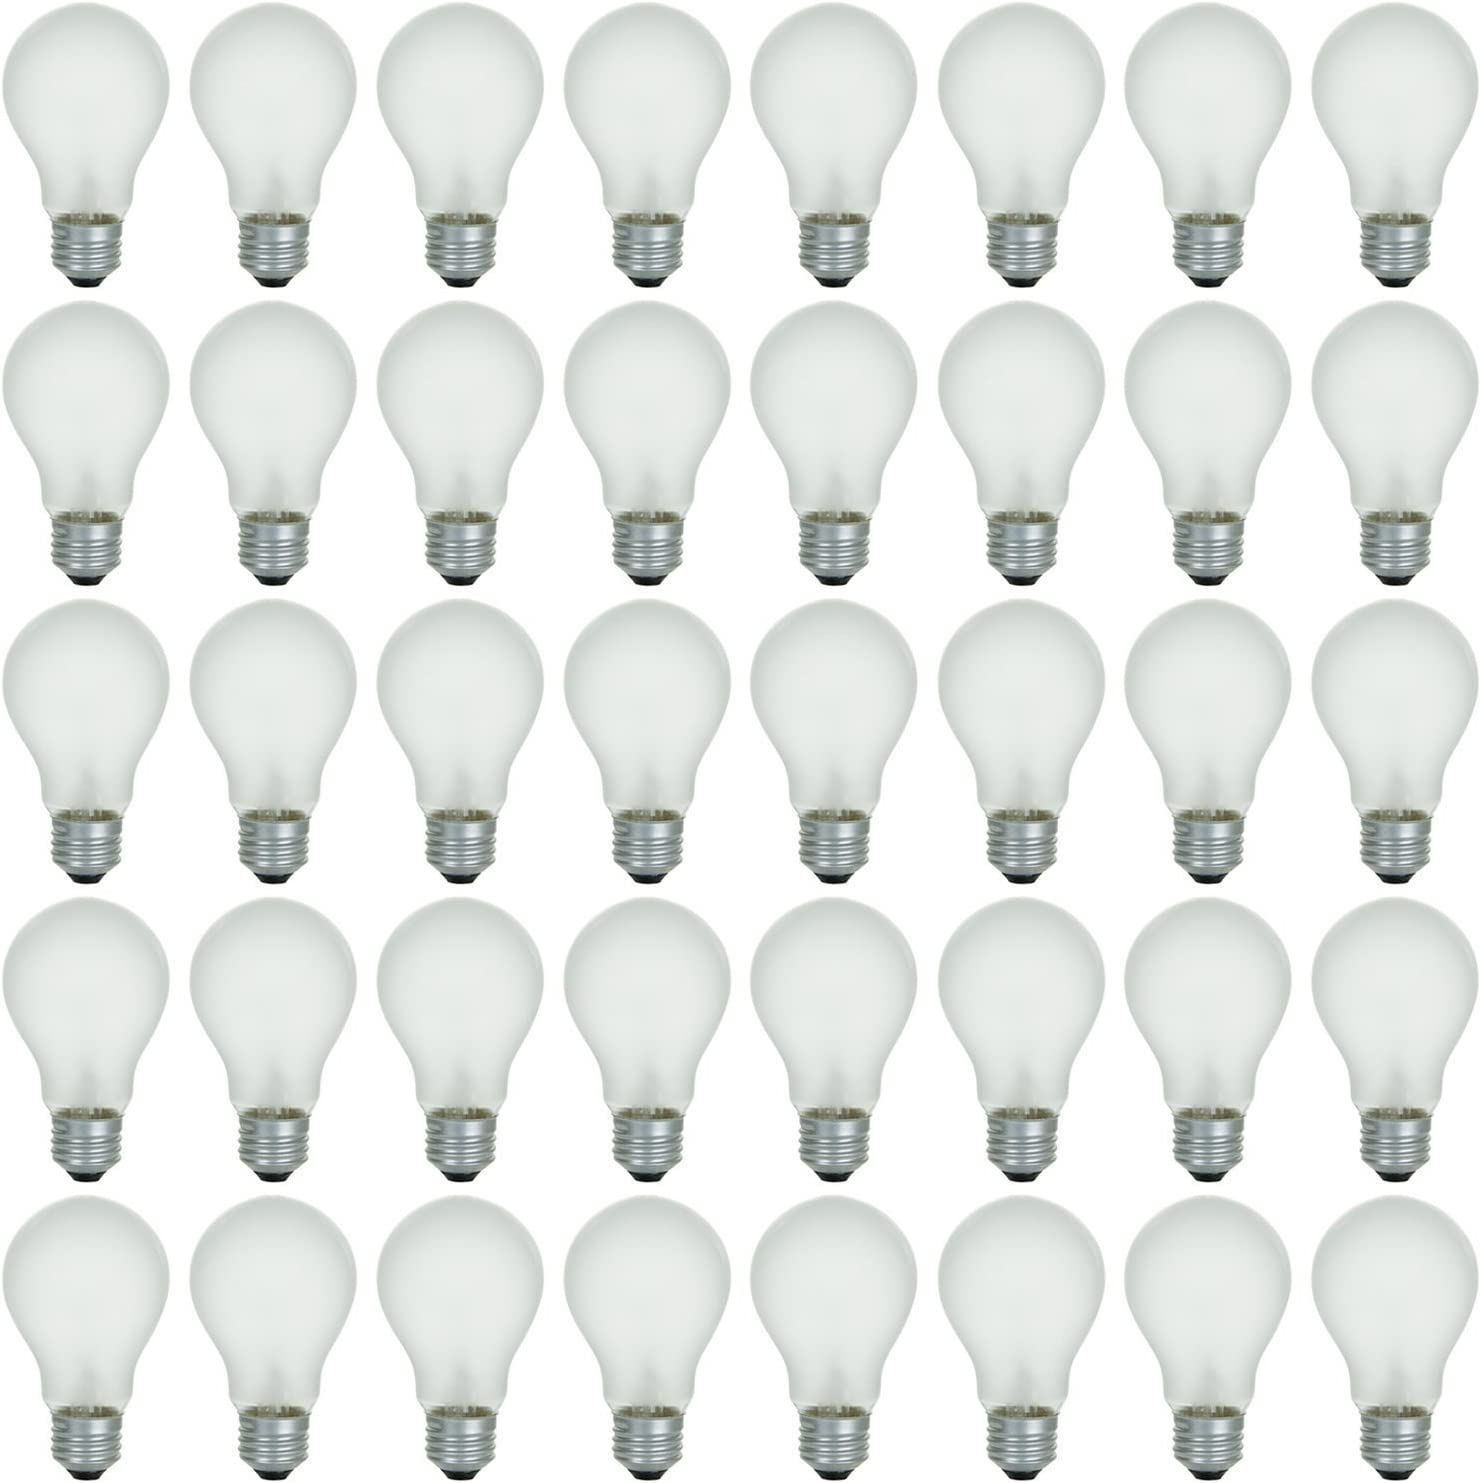 48 Pack of 75 Watt Long Life Incandescent Light Bulb, 130 Volt, Warm White, 3200K, Frost Finish, Medium Base, Rough Service - Vibration Resistant: Classic & Beautiful Natural Light Appearance 100 CRI